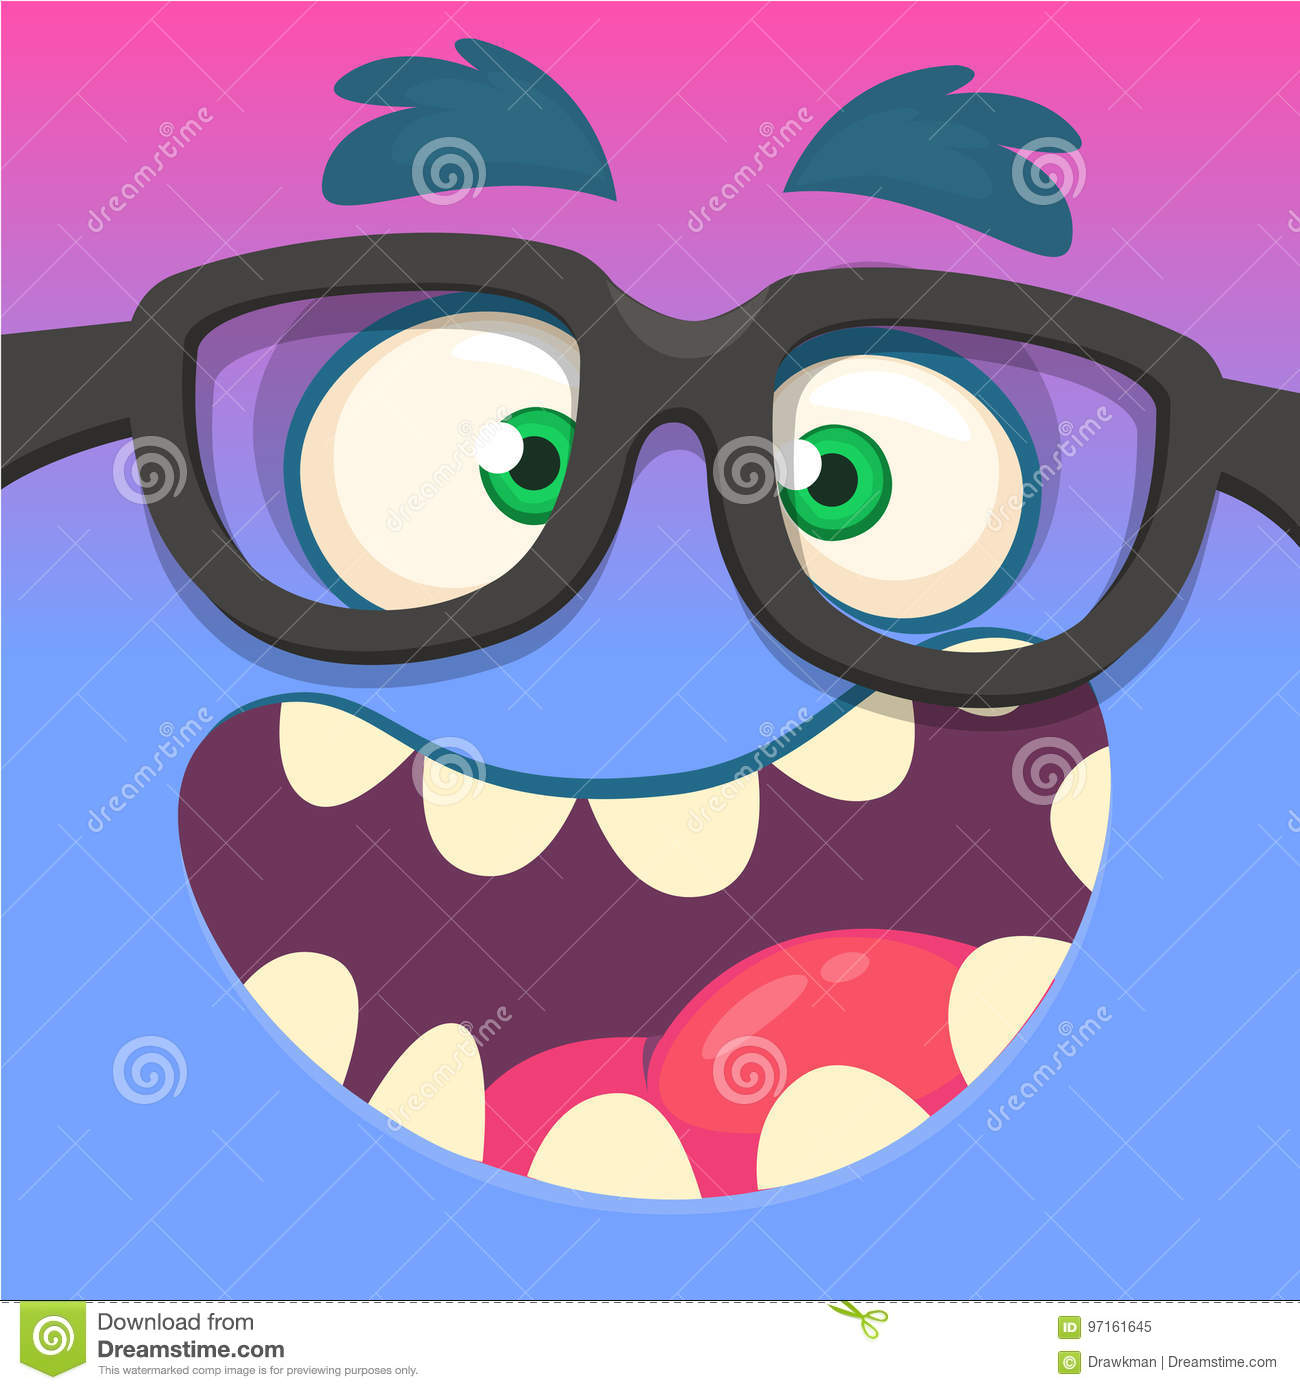 Todd Clipart 20 Fee Cliparts Download Imagenes: 810 Nerdy Stock Illustrations